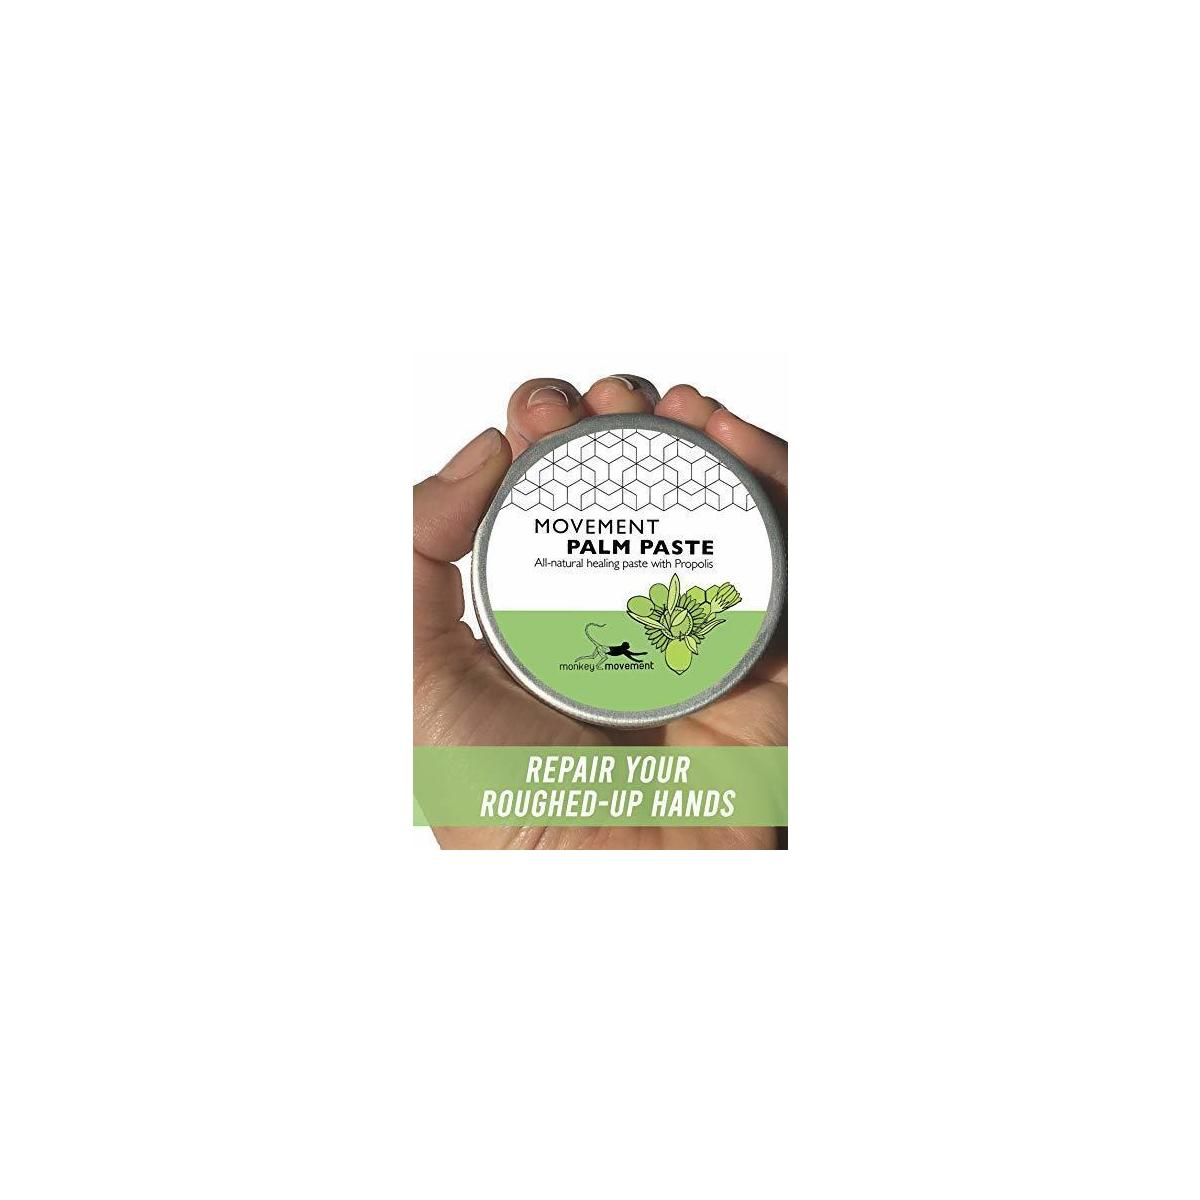 Skin Healing Palm Repair Cream for Athletes: All Natural Dry Skin Relief Balm with Propolis for Rough Hands - Callus Remover Lotion for Climbers, Weightlifters, Gymnasts to Soothe Rips, Tears, Peeling Skin